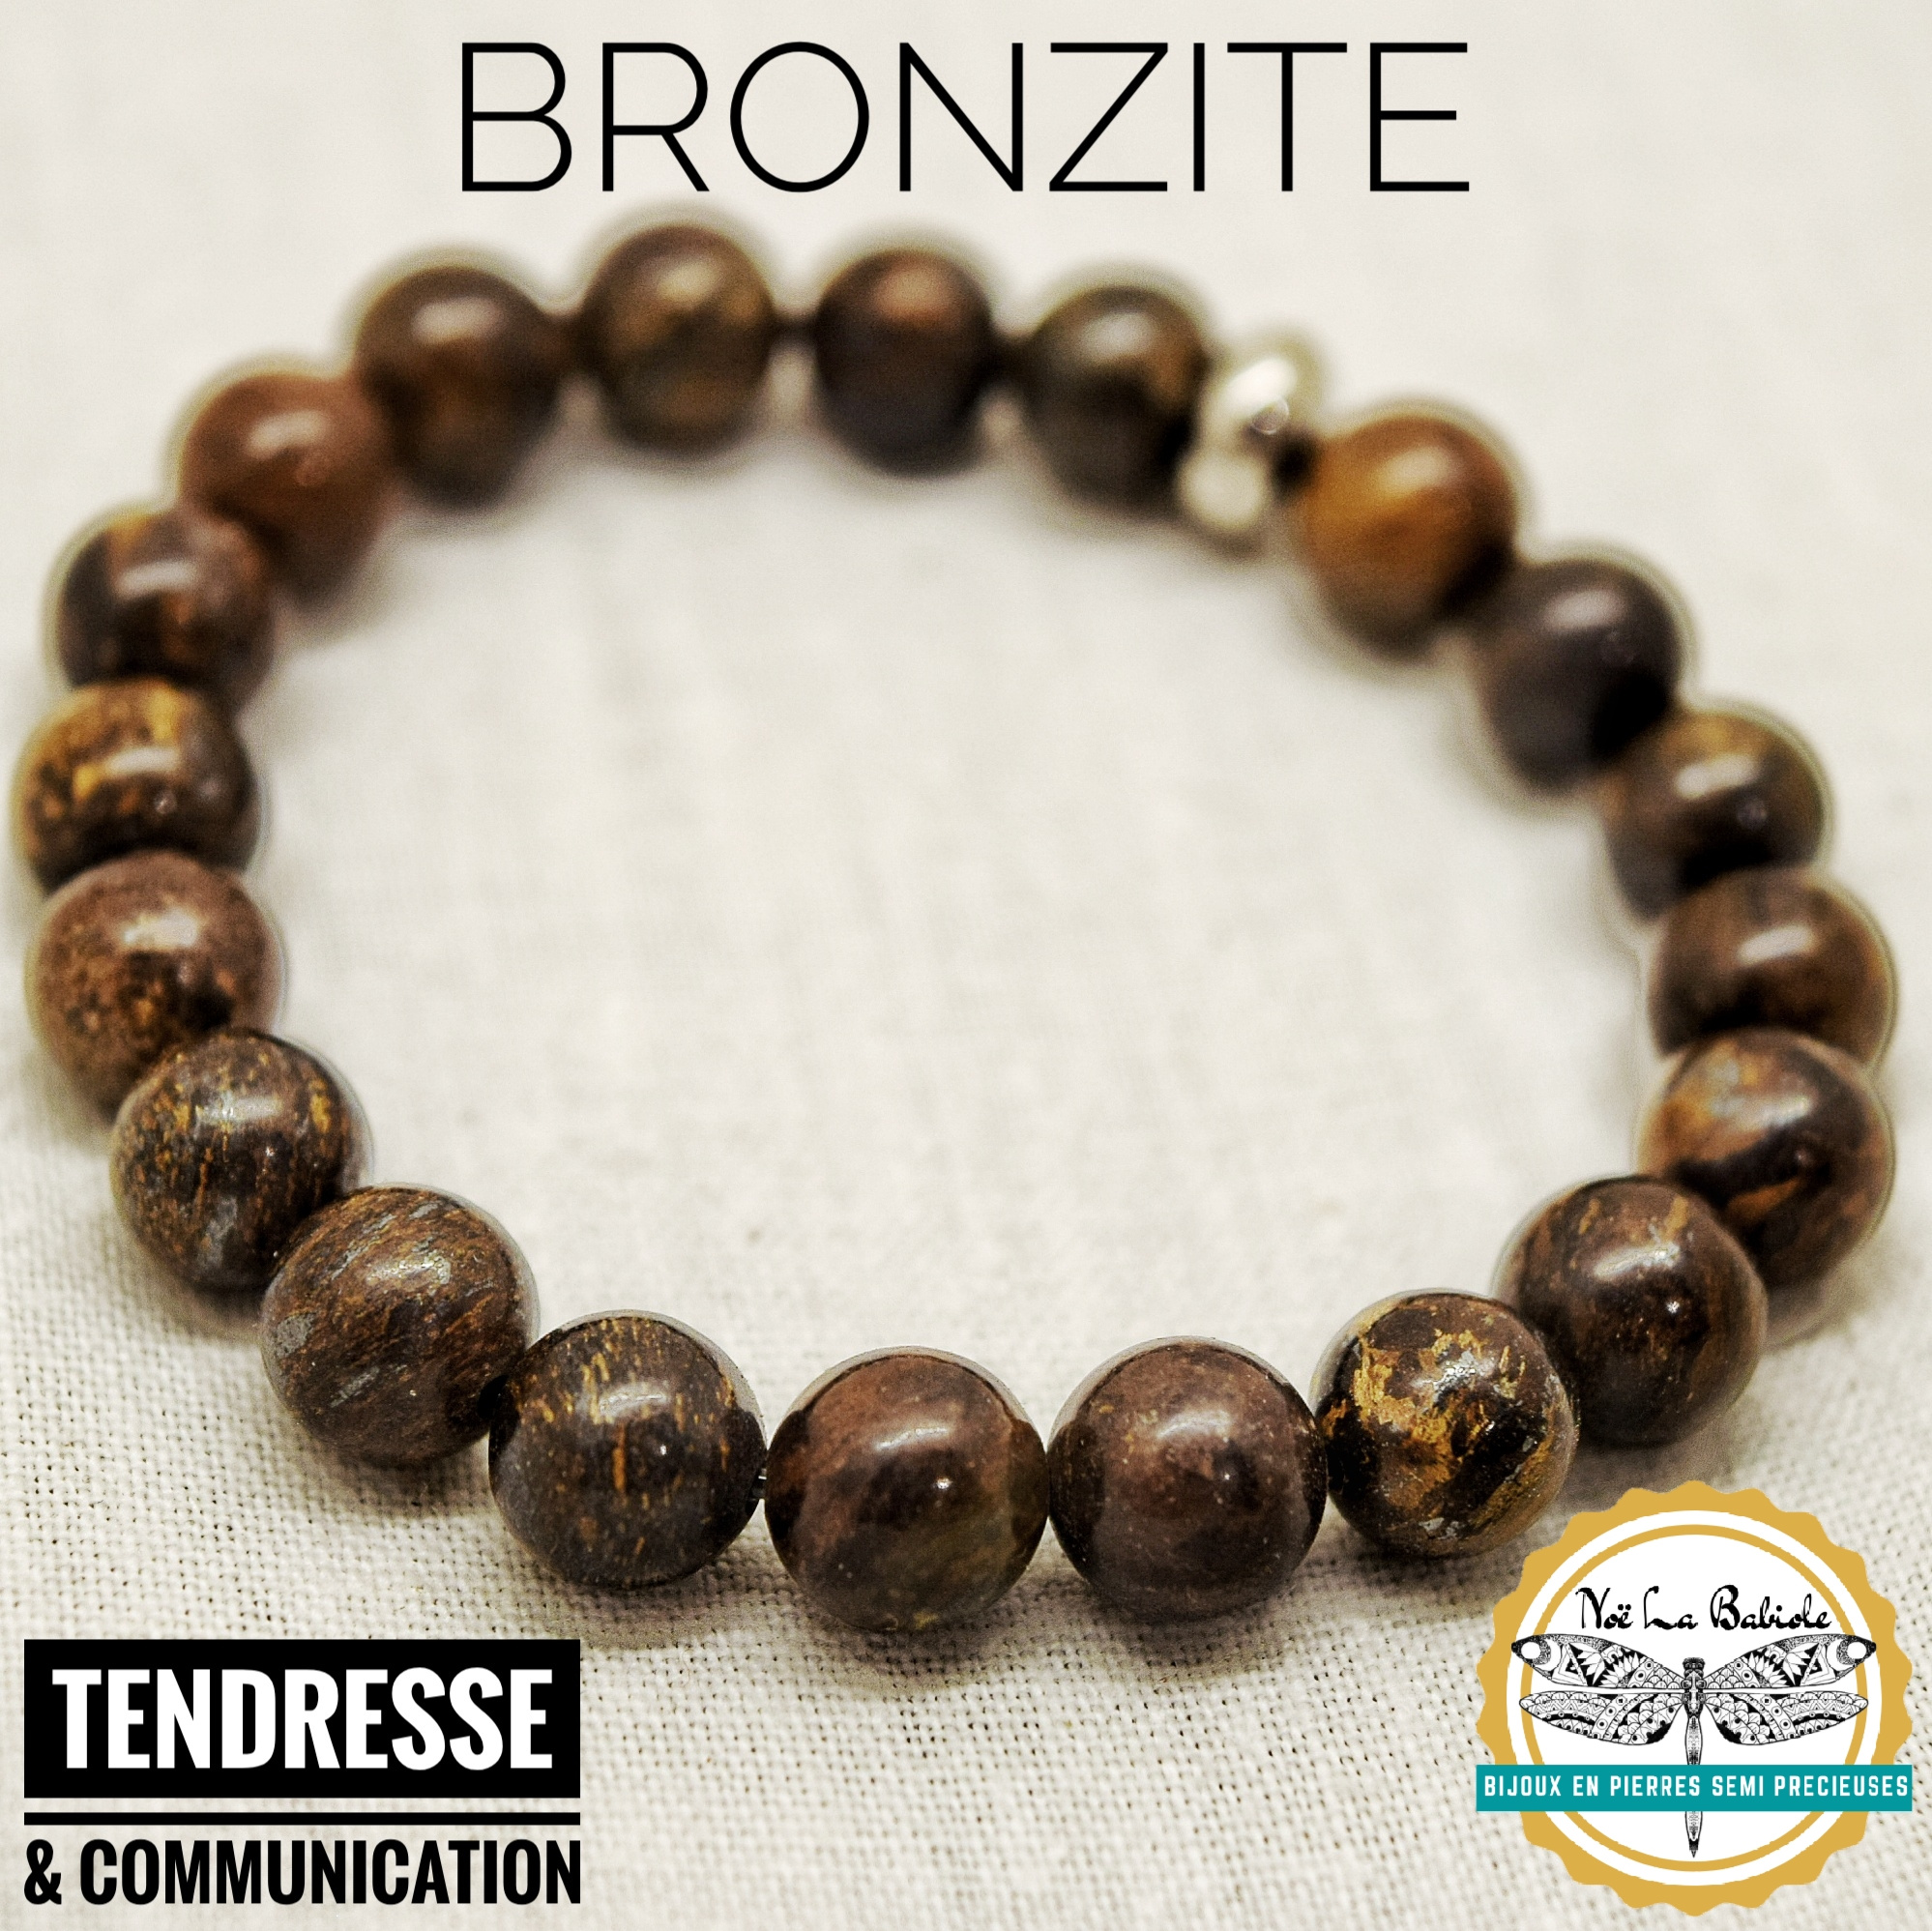 Bracelet Tendresse & Communication en Bronzite